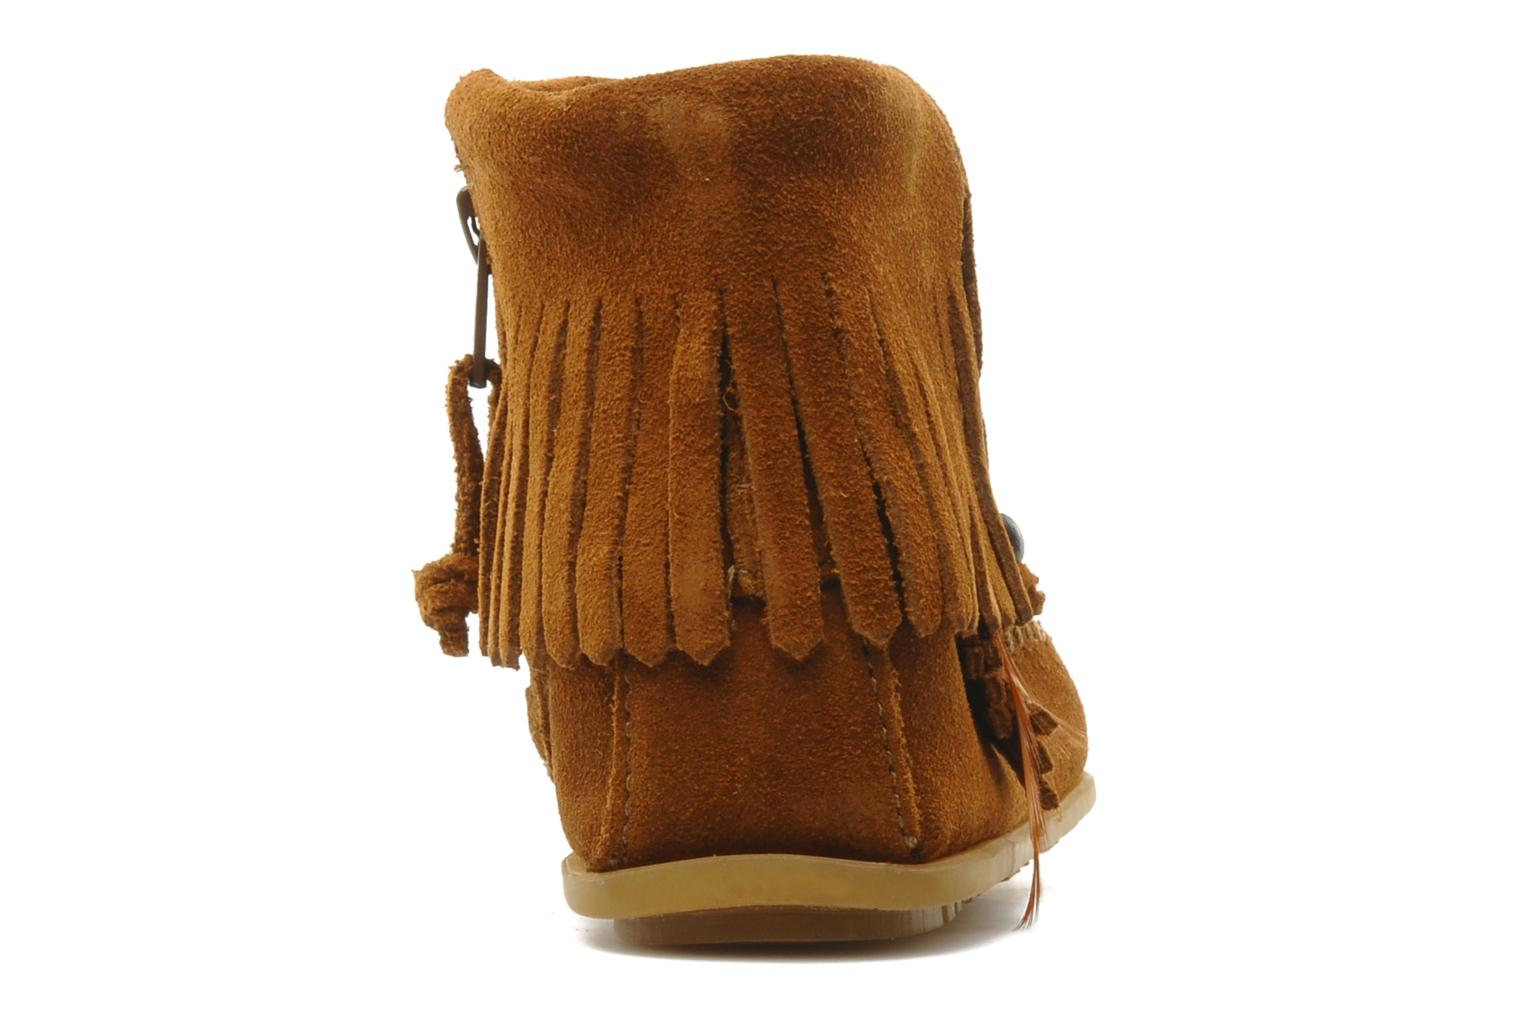 CONCHOFEATHER BT Brown Suede